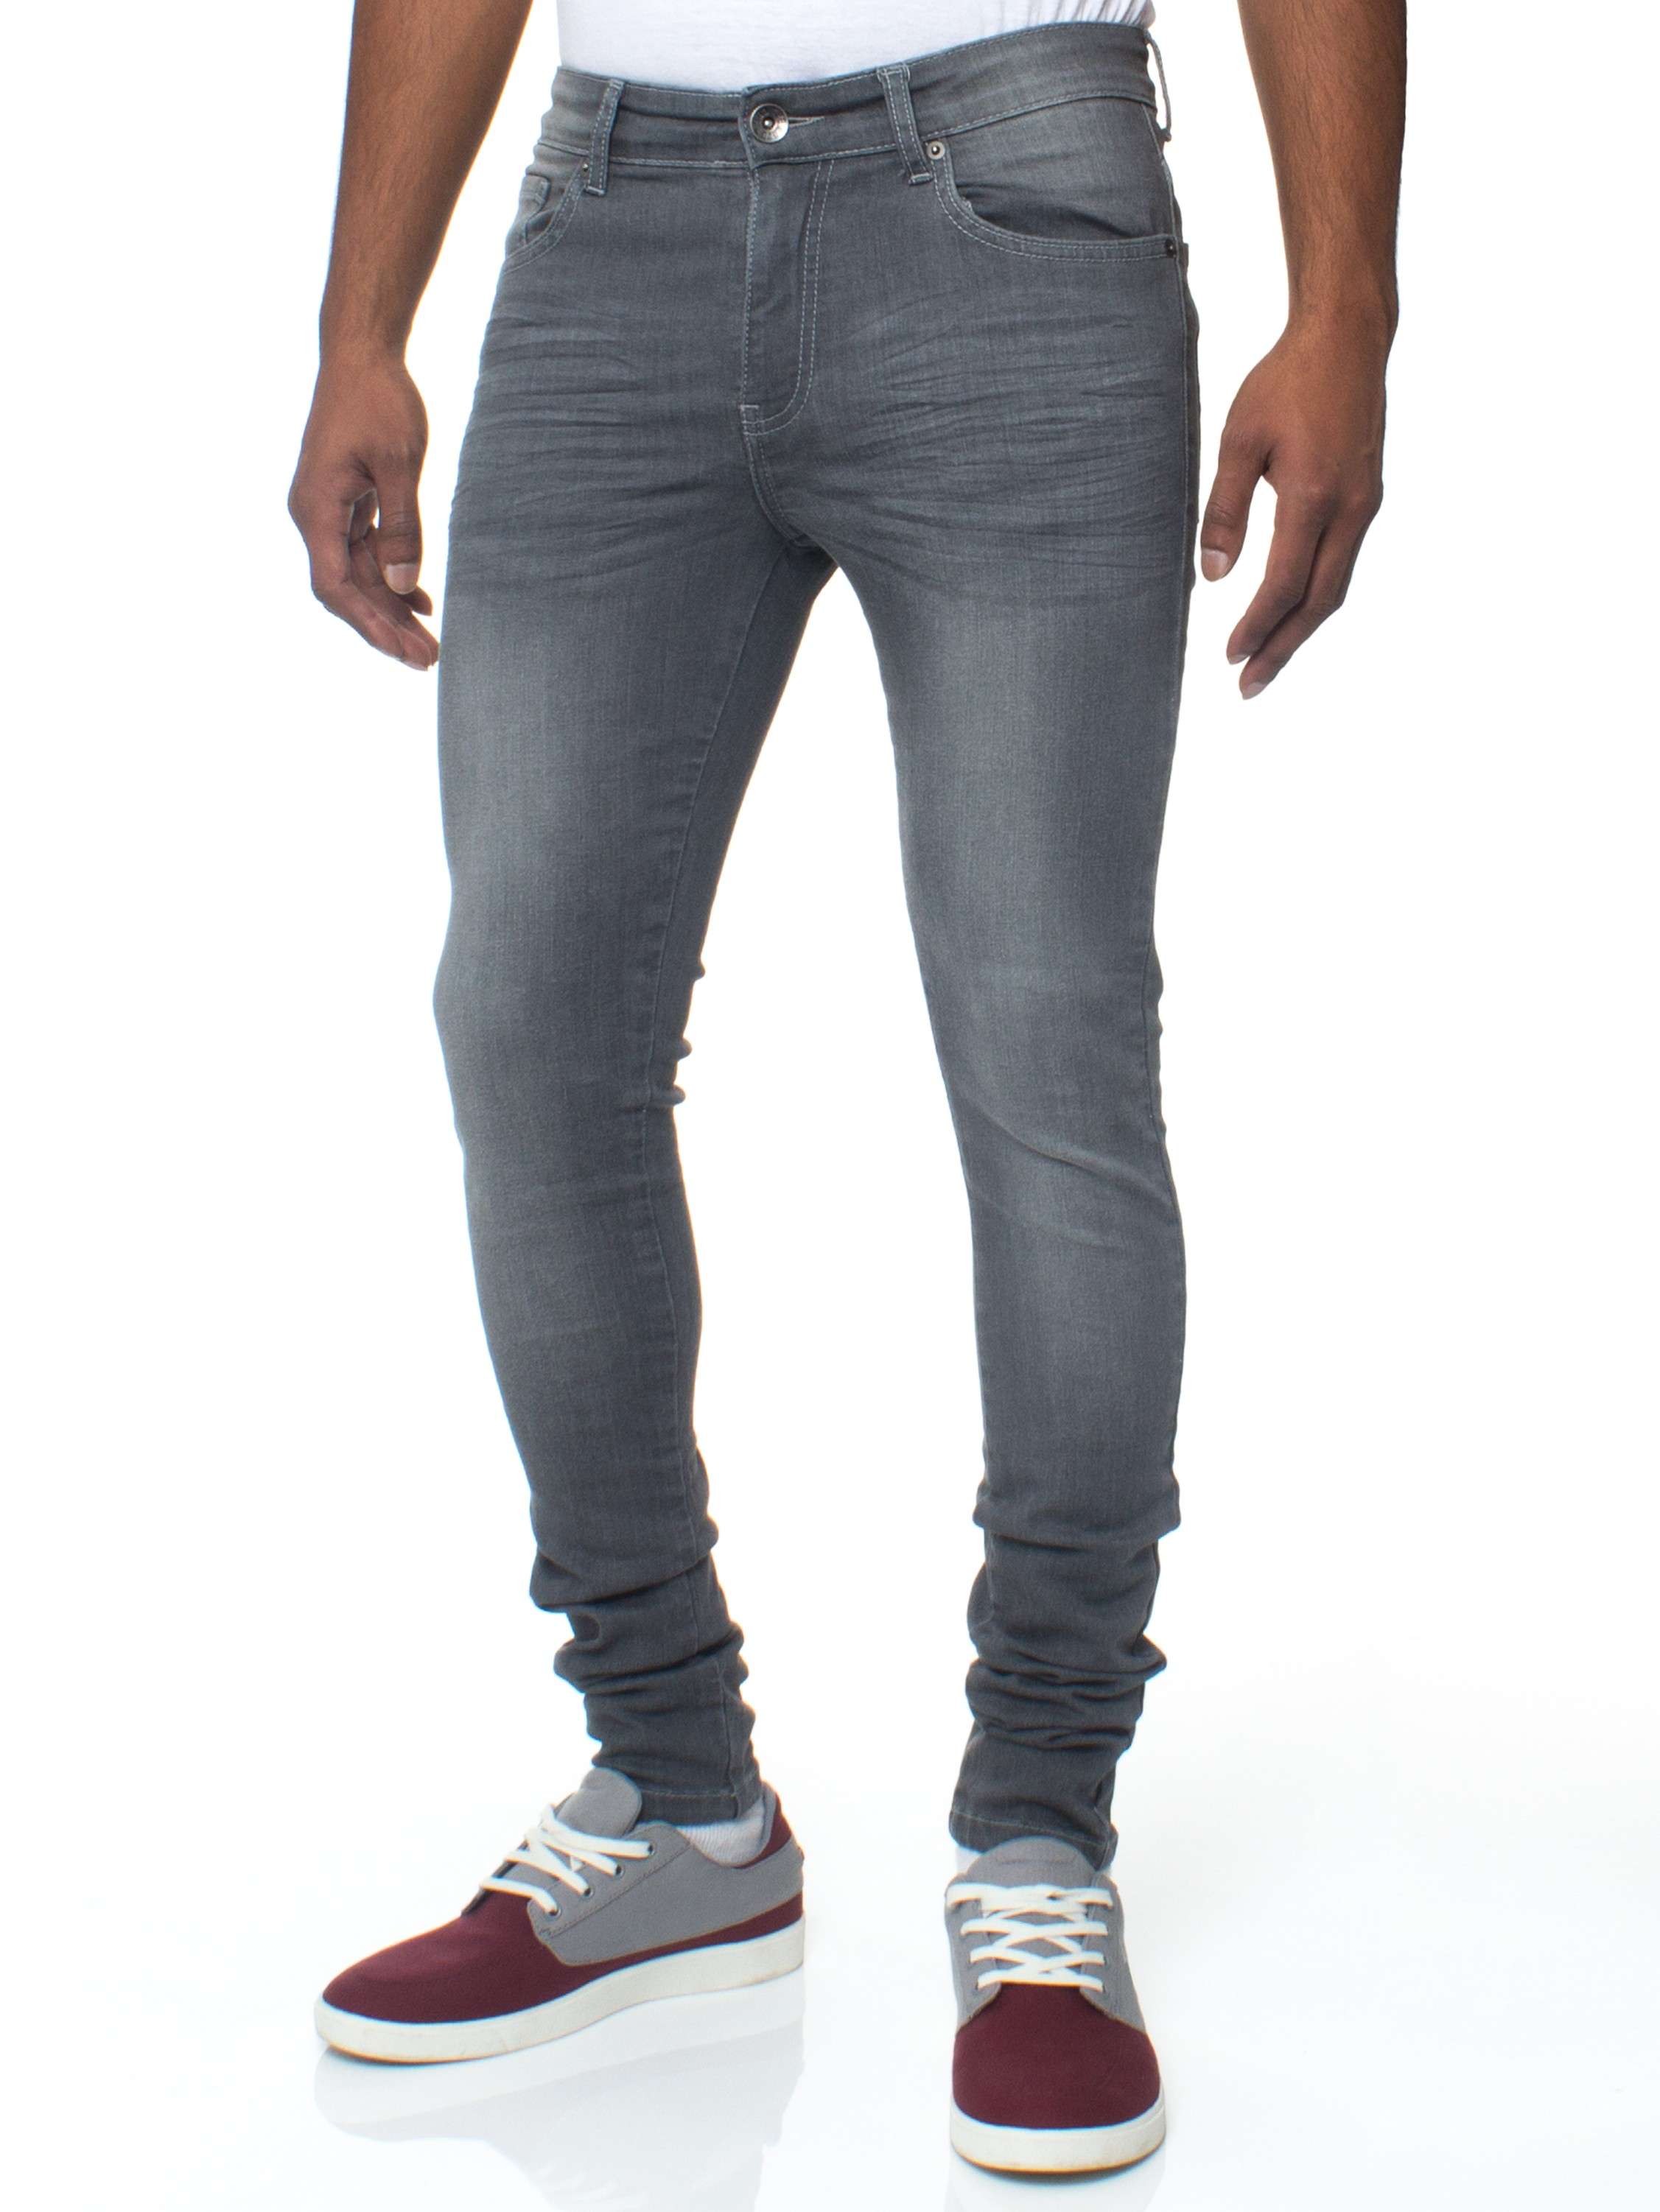 mens stretch jeans mens skinny slim fit stretch grey jeans rjfunko